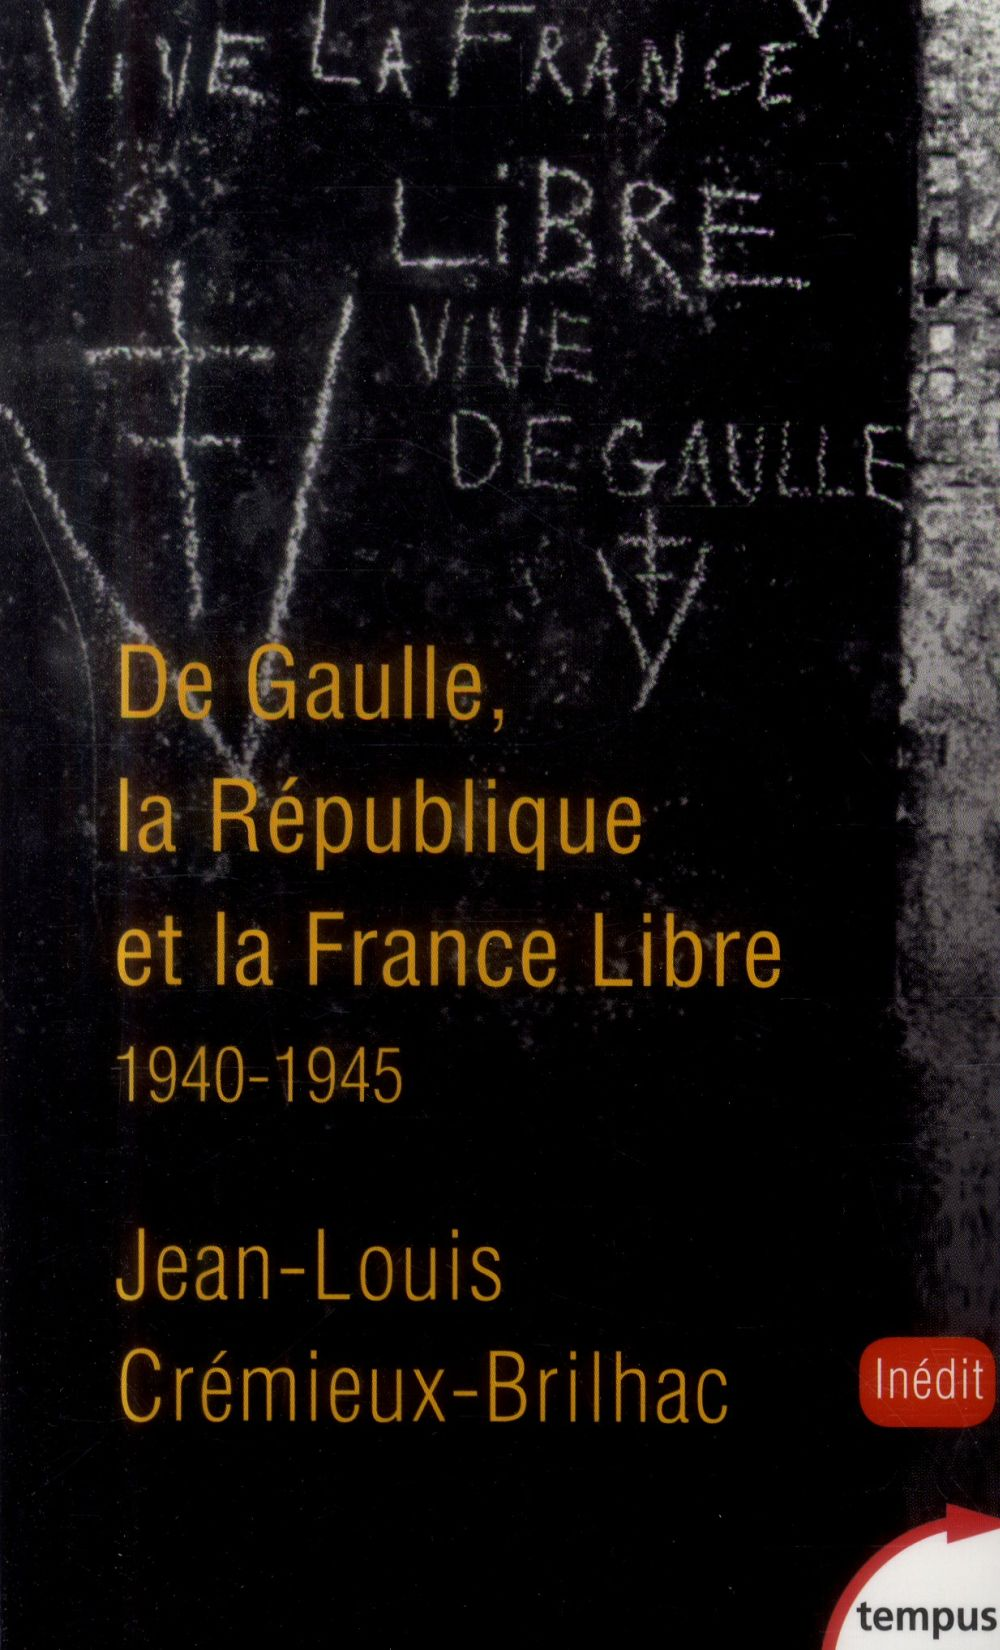 DE GAULLE  LA REPUBLIQUE ET LA FRANCE LIBRE 1940-1945